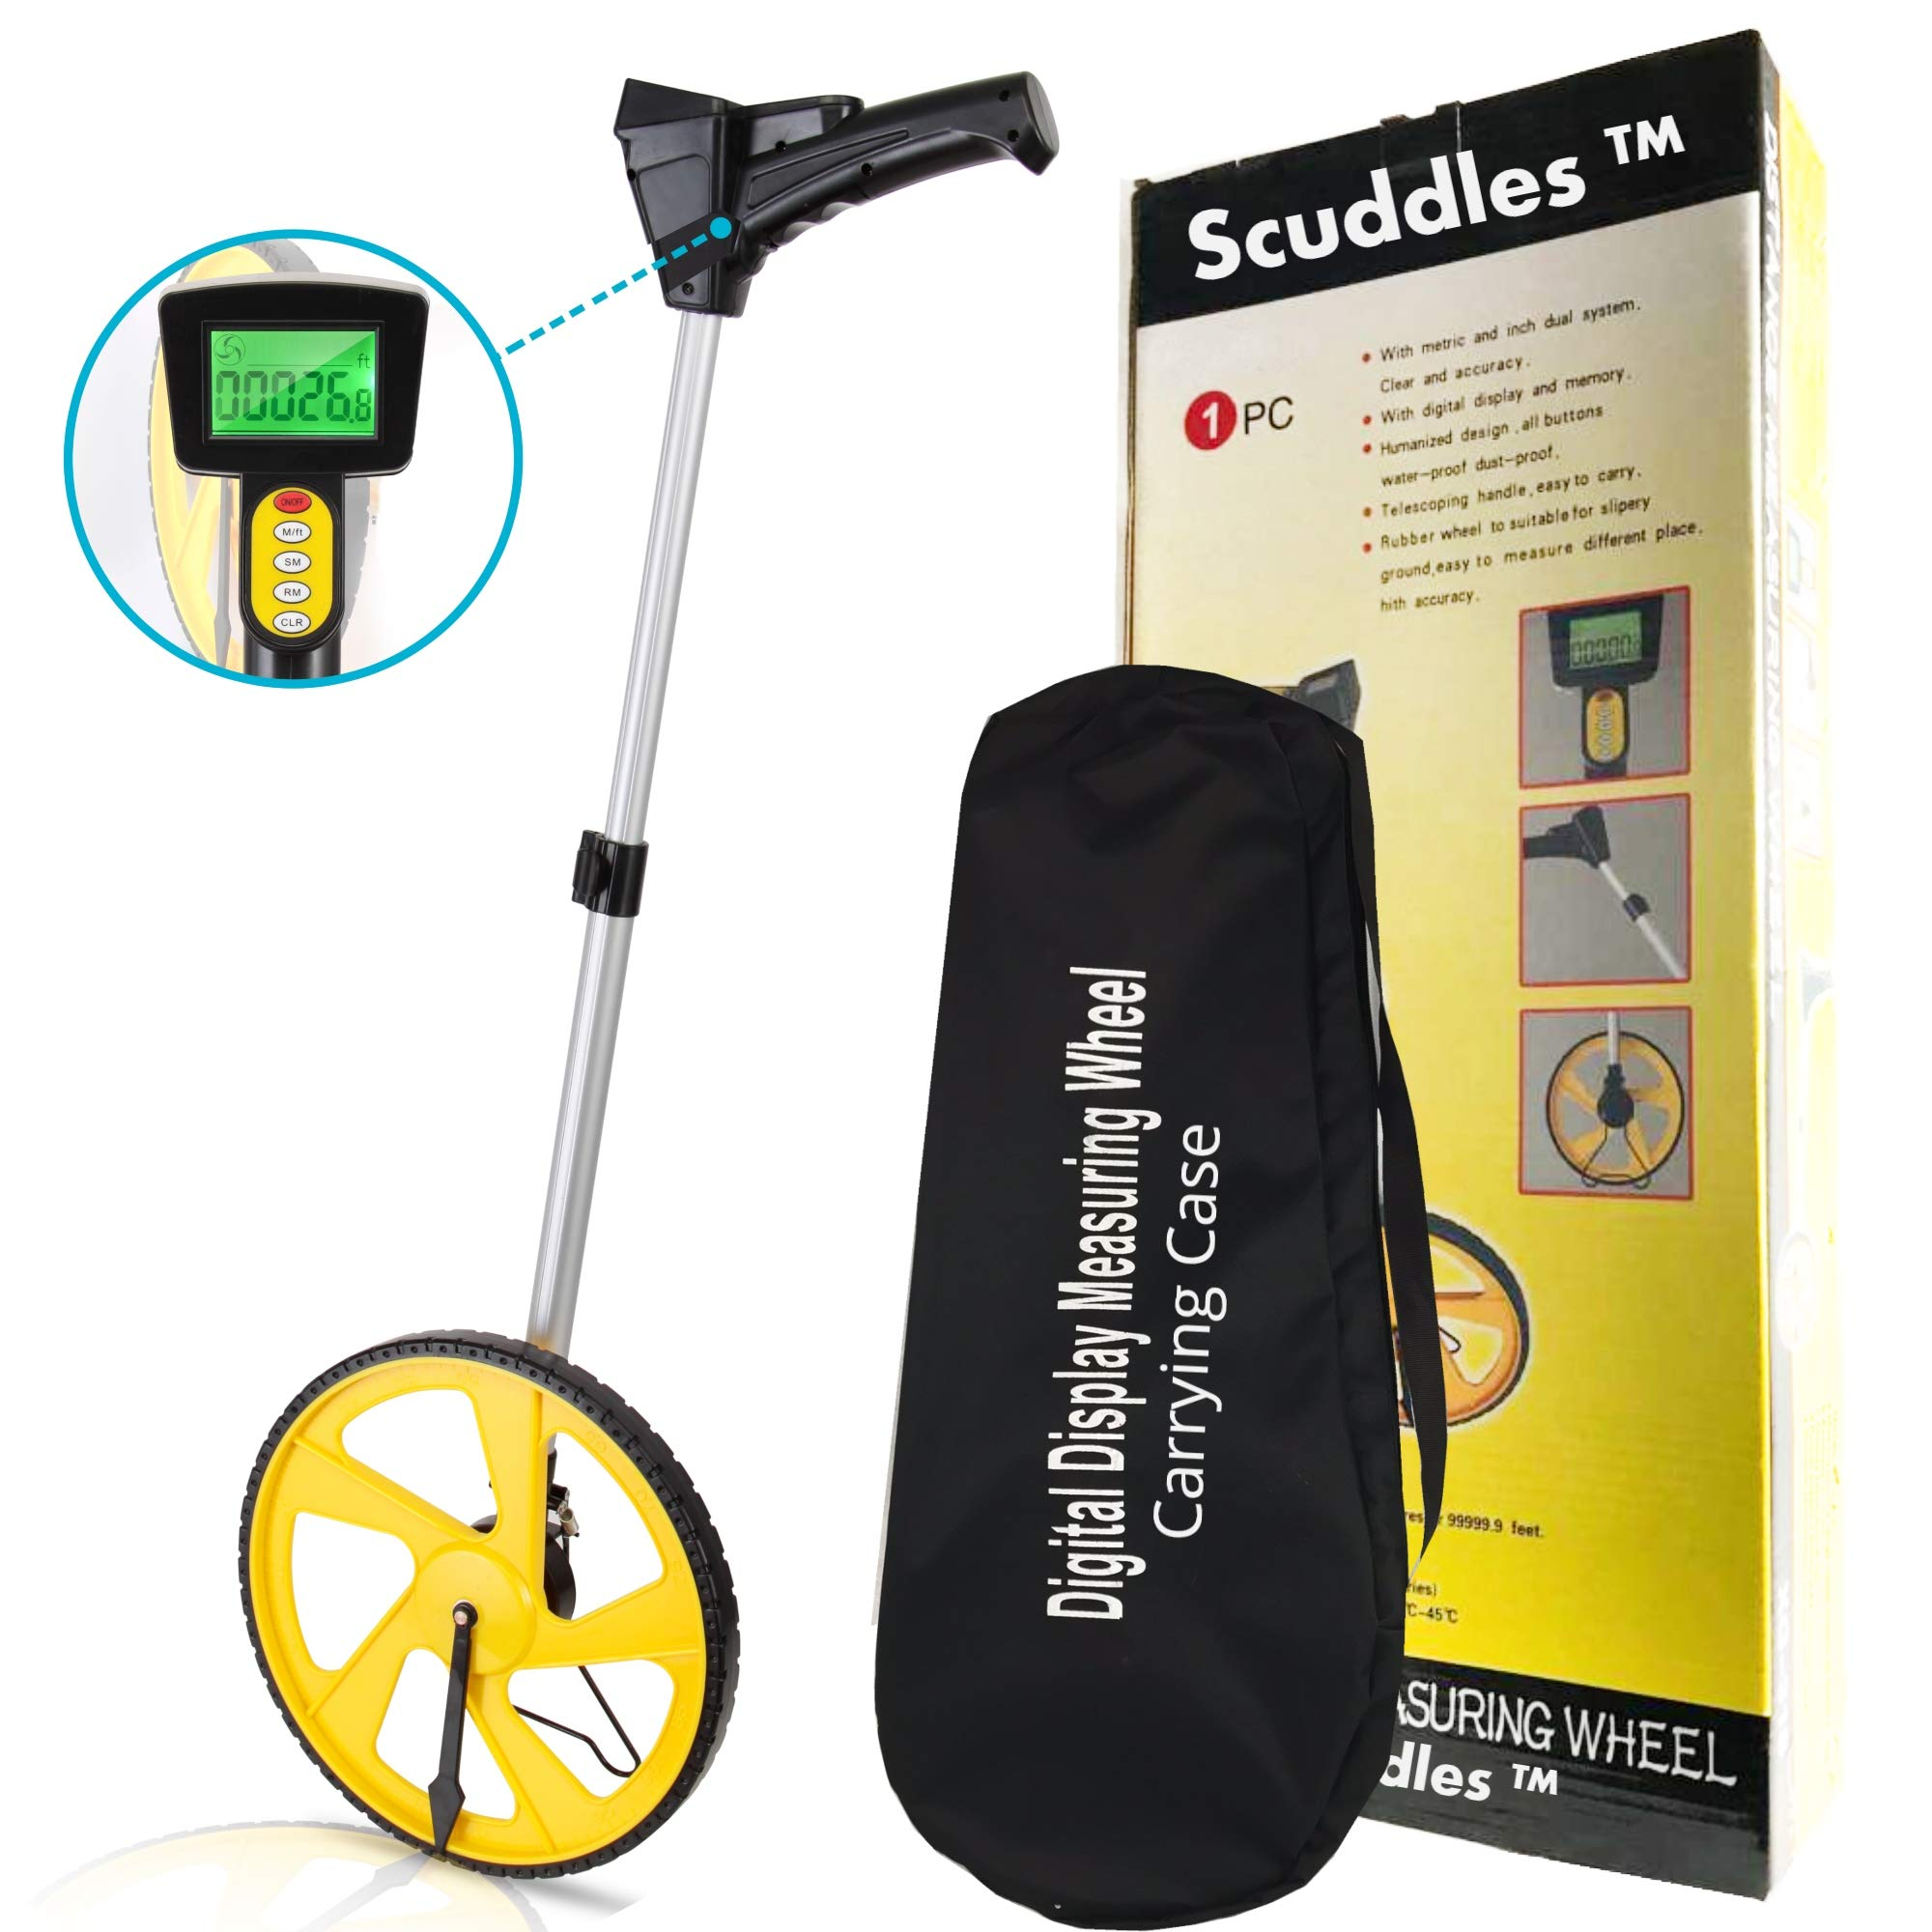 Scuddles Measuring Wheel Digital Display 12-Inch Can Measure Up To 10,000 Feet Perfect surveying Tool For Distance Measurment by scuddles